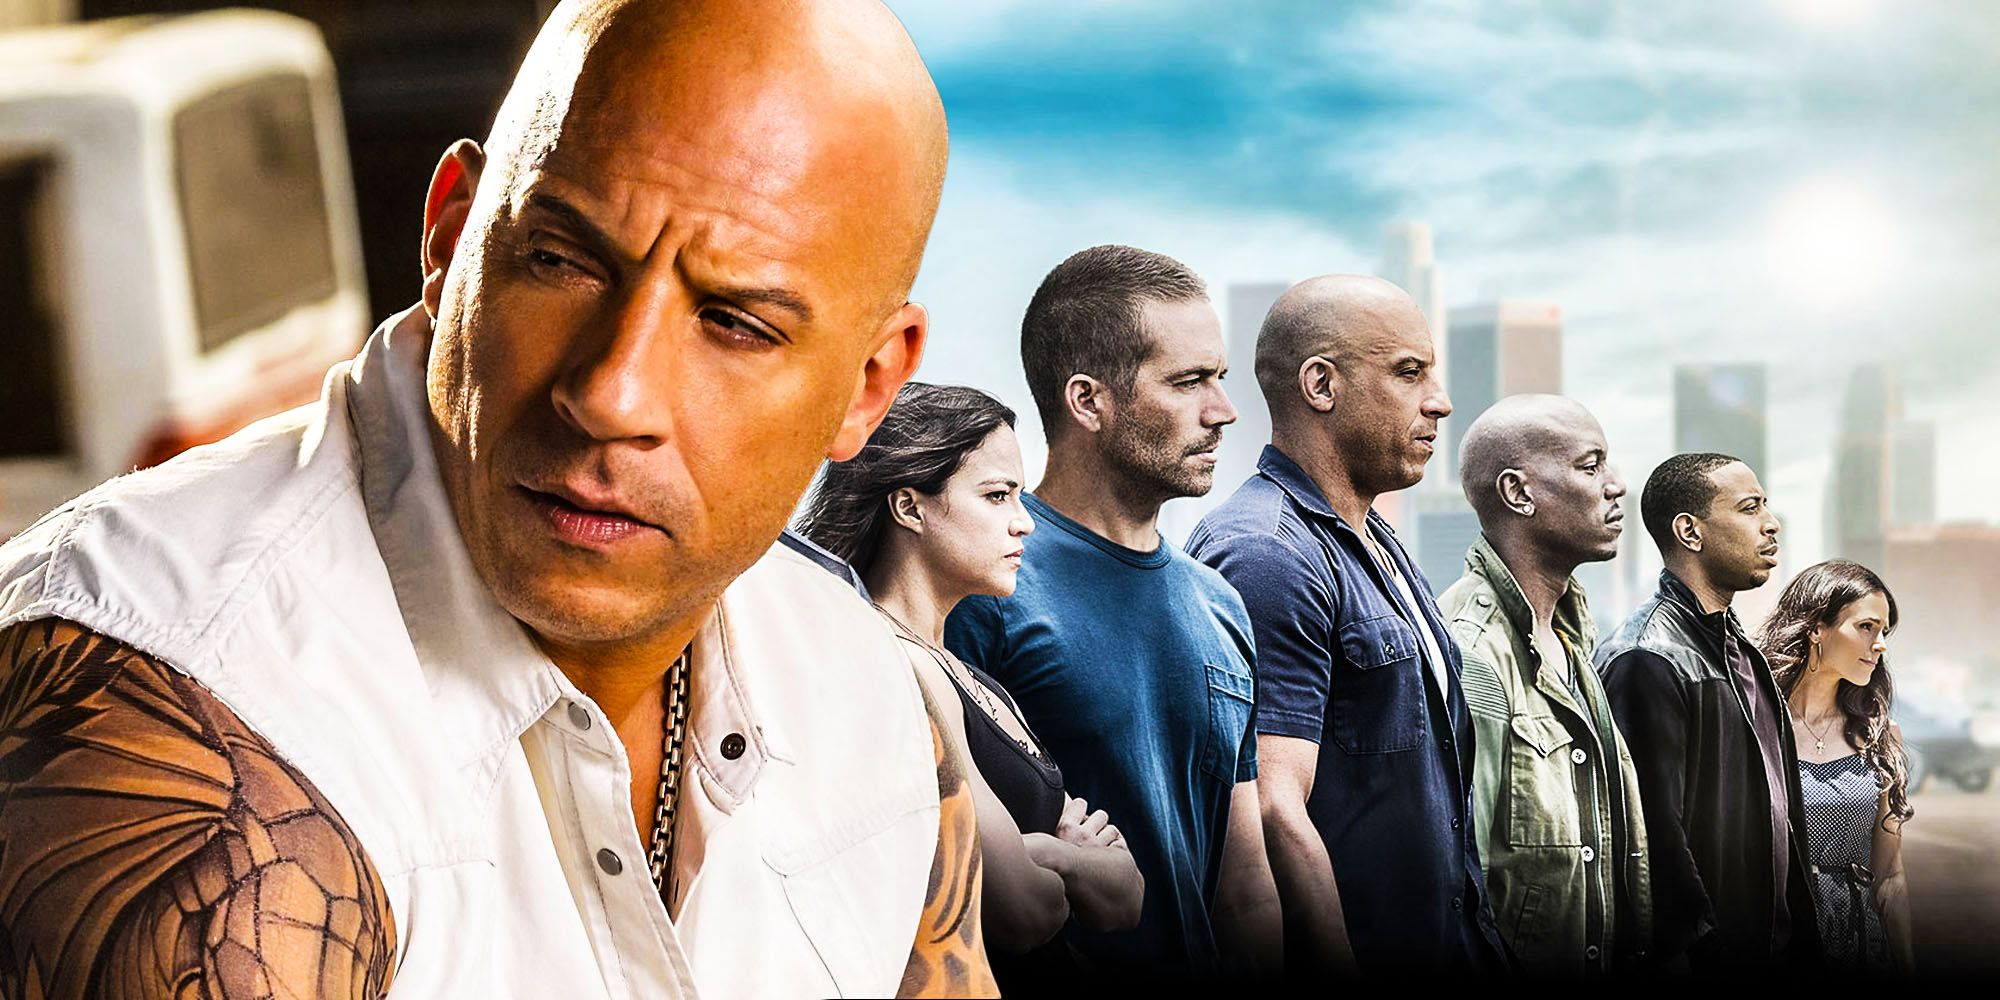 xXx 4 Should Borrow From Fast & Furious And Introduce Xander Cage s Family